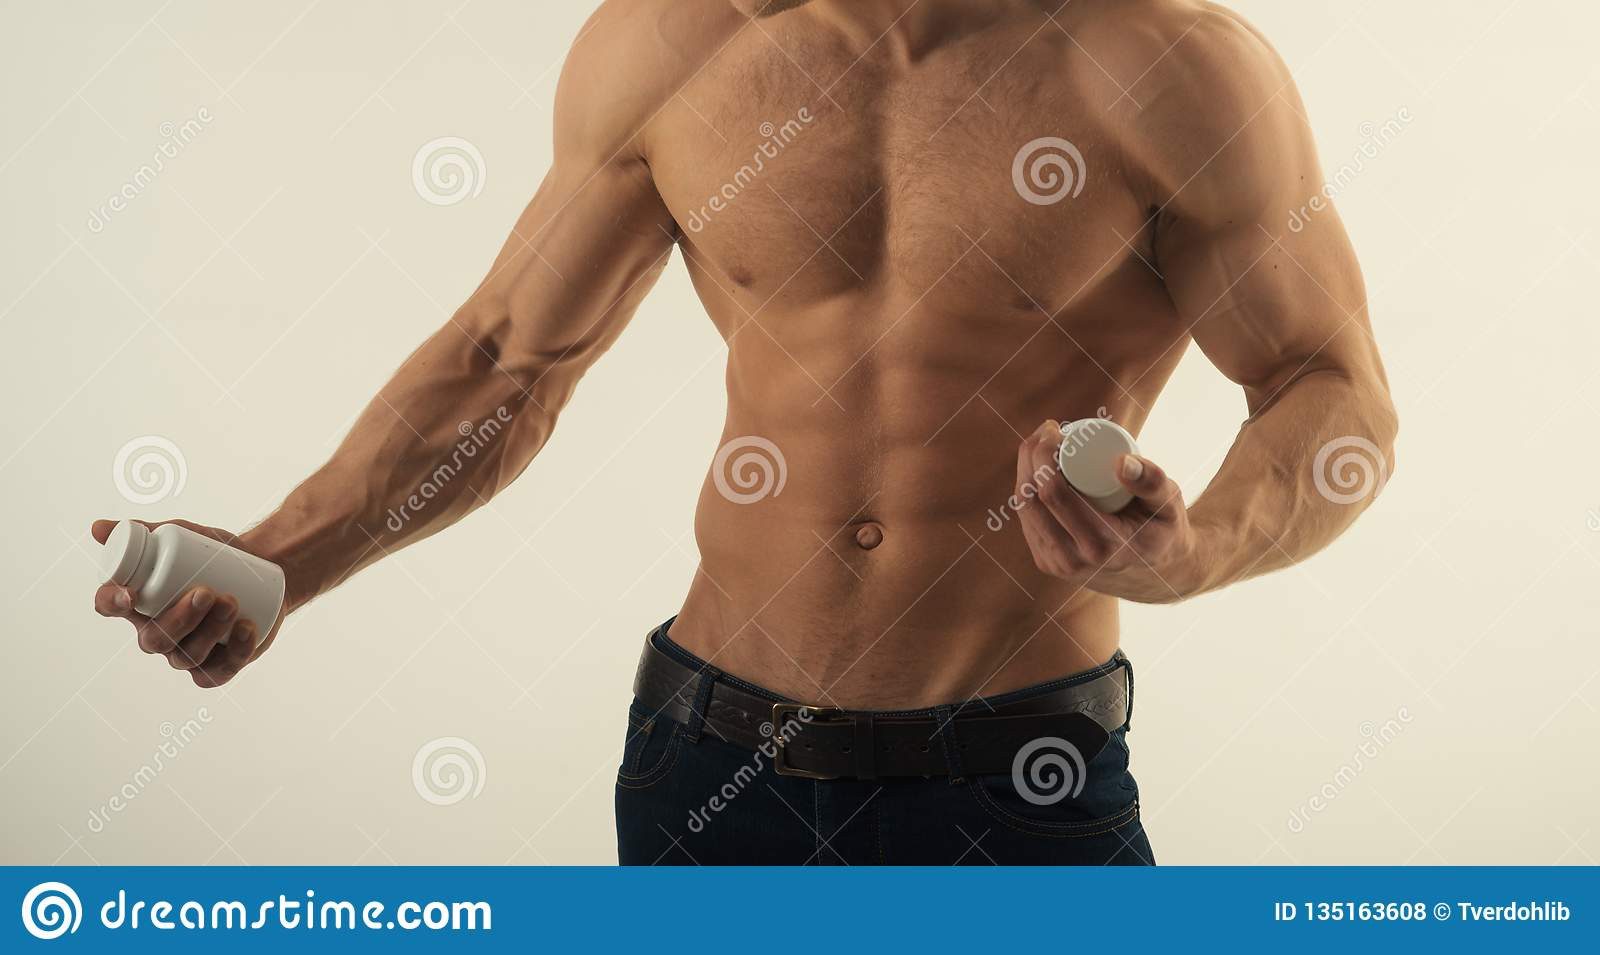 Where To Start With steroids?